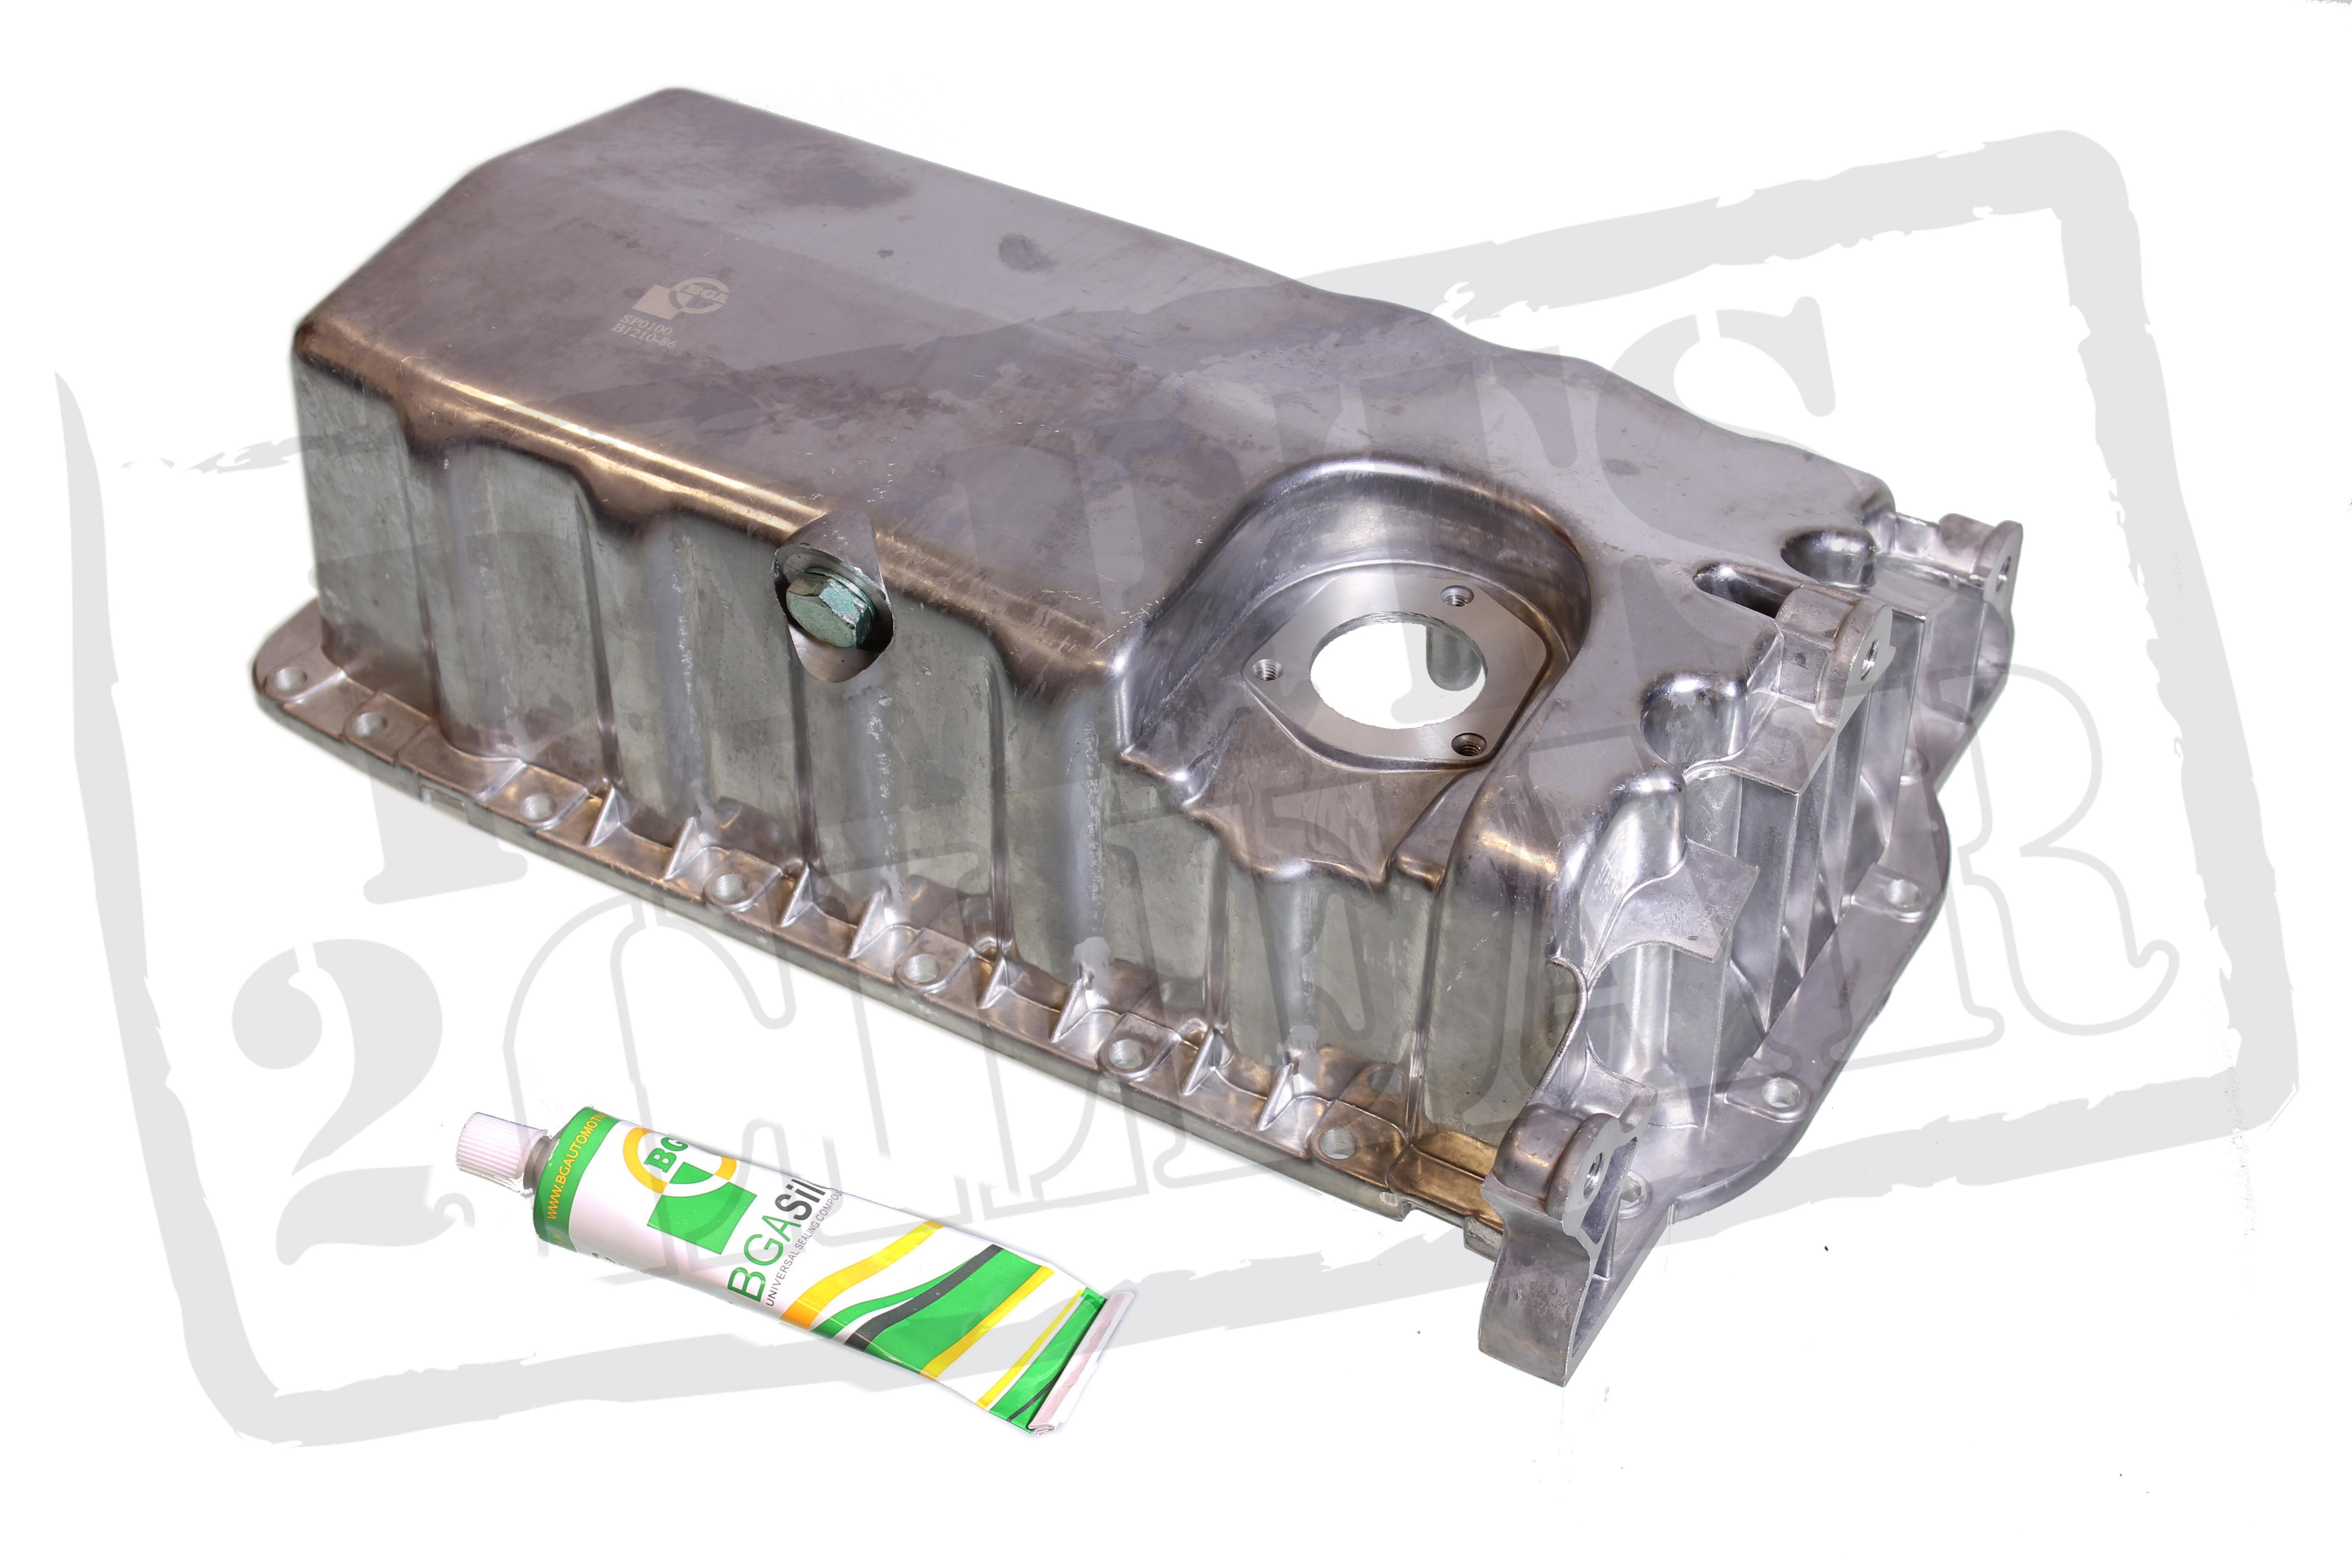 Seat Toledo 1 9 Tdi 110 Bhp Engine Oil Sump Pan With